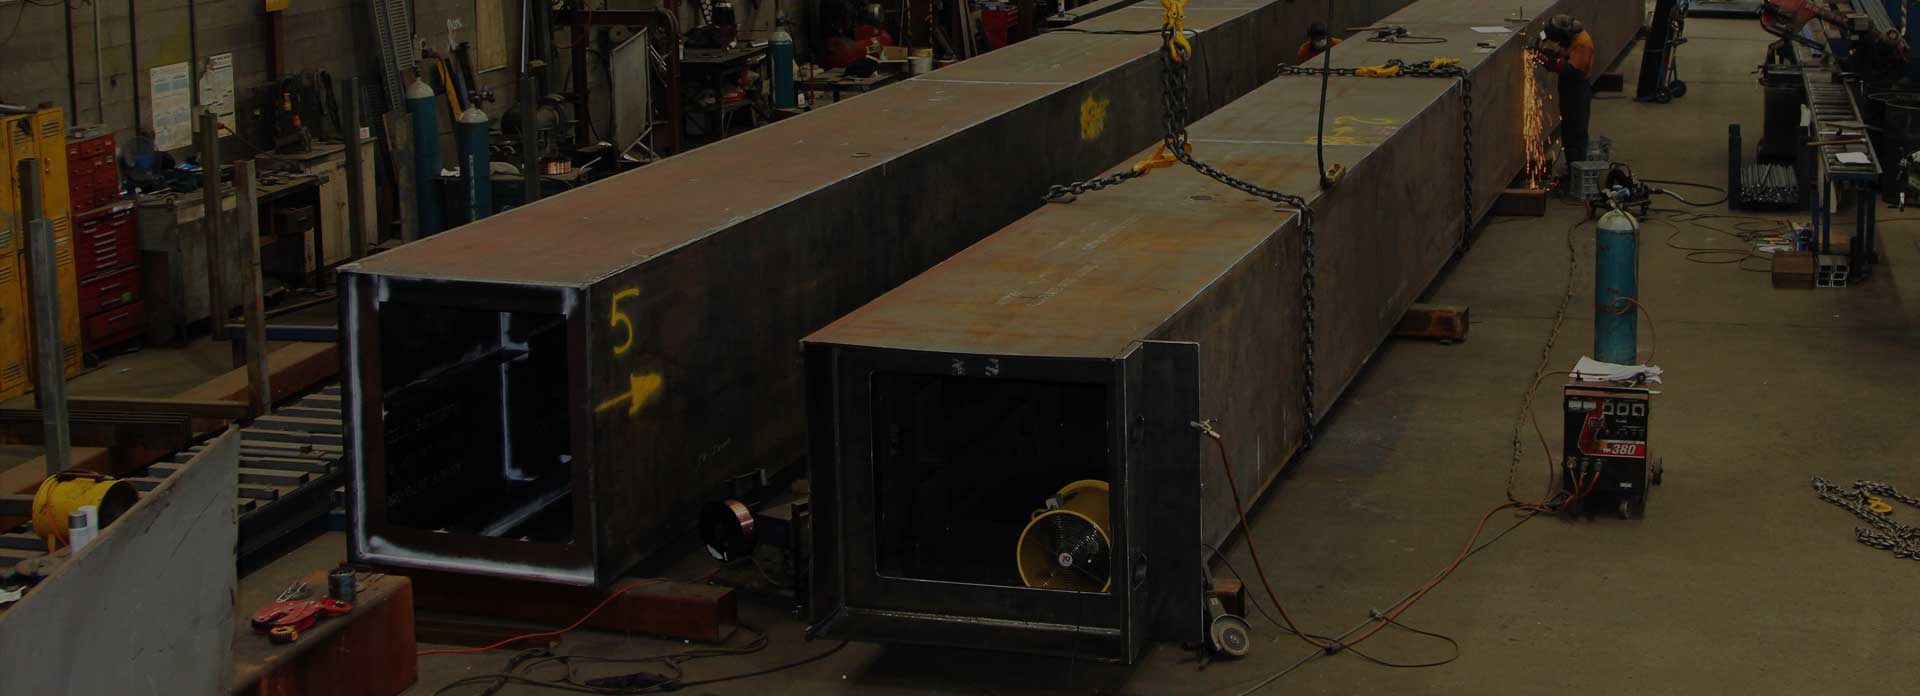 Steel Fabricators – Steel Fabrication Melbourne